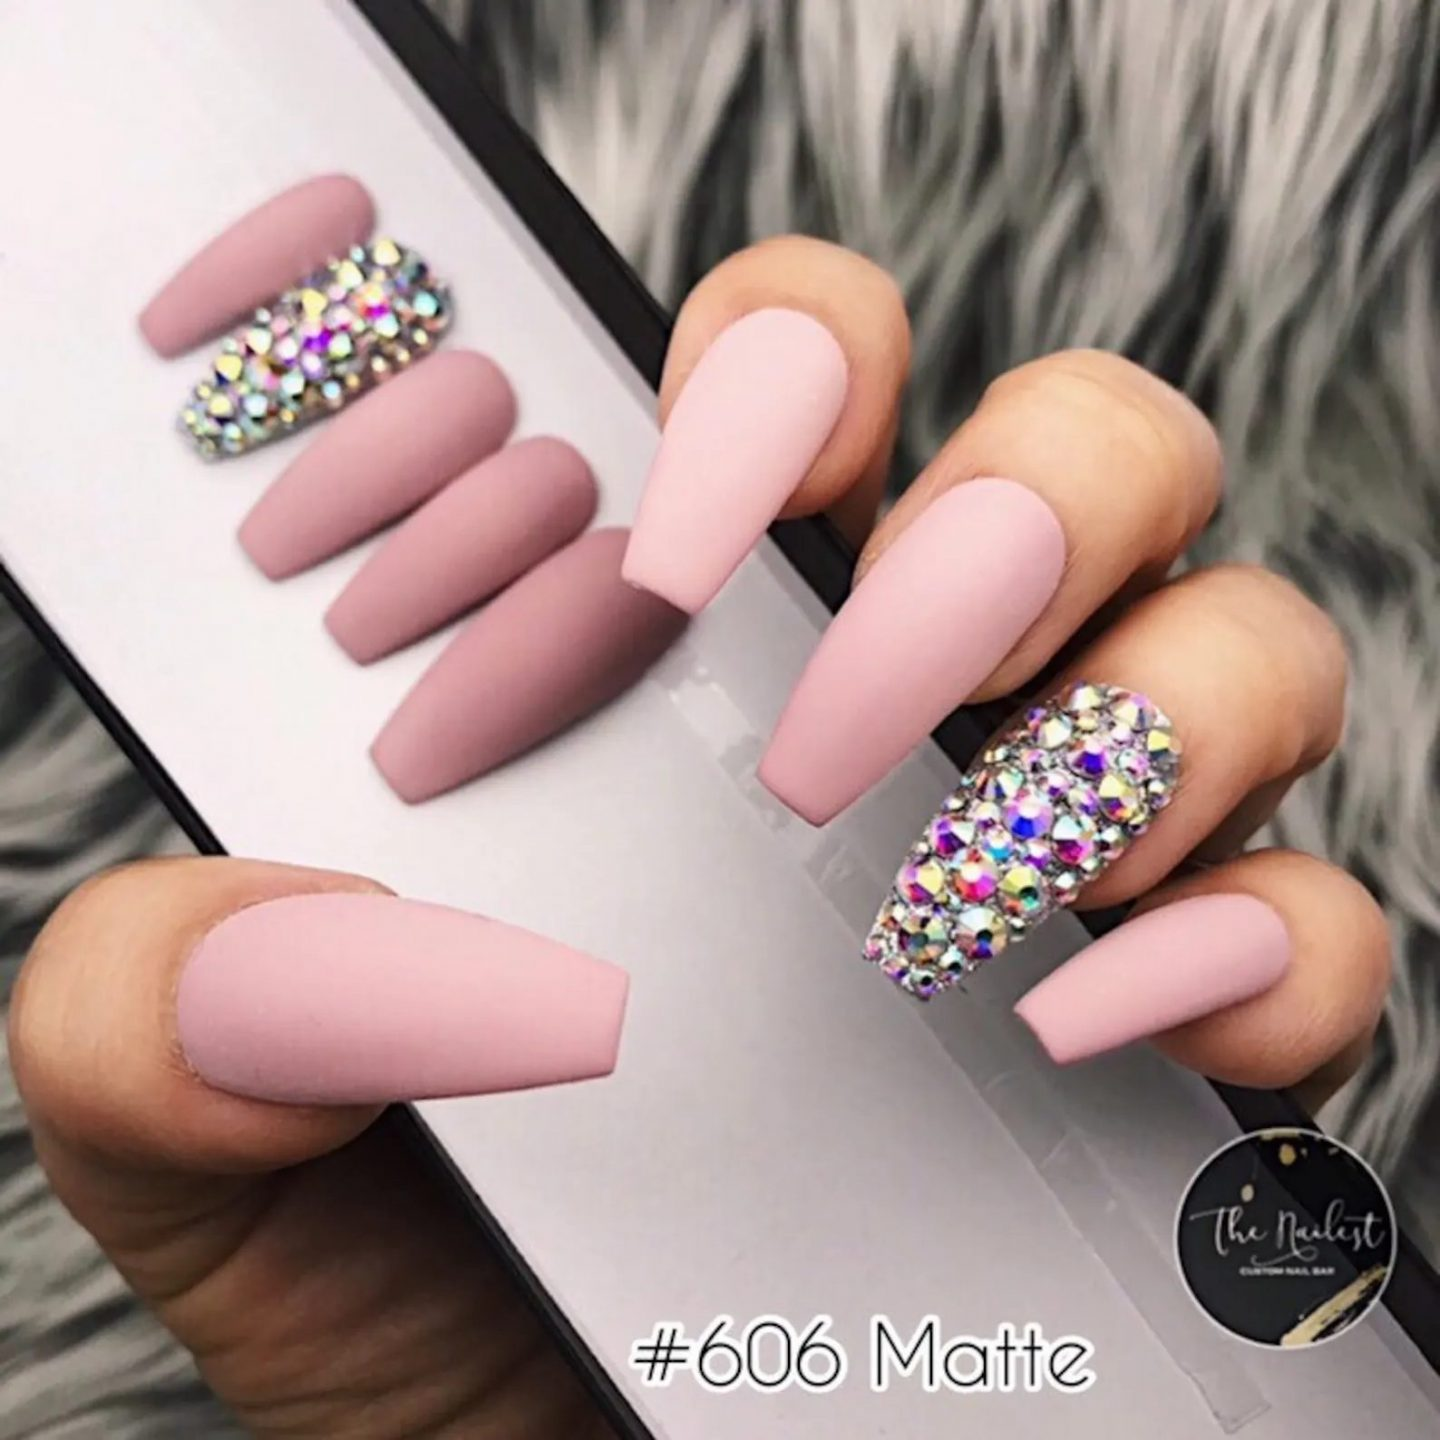 Matte pink and mauve with crystals